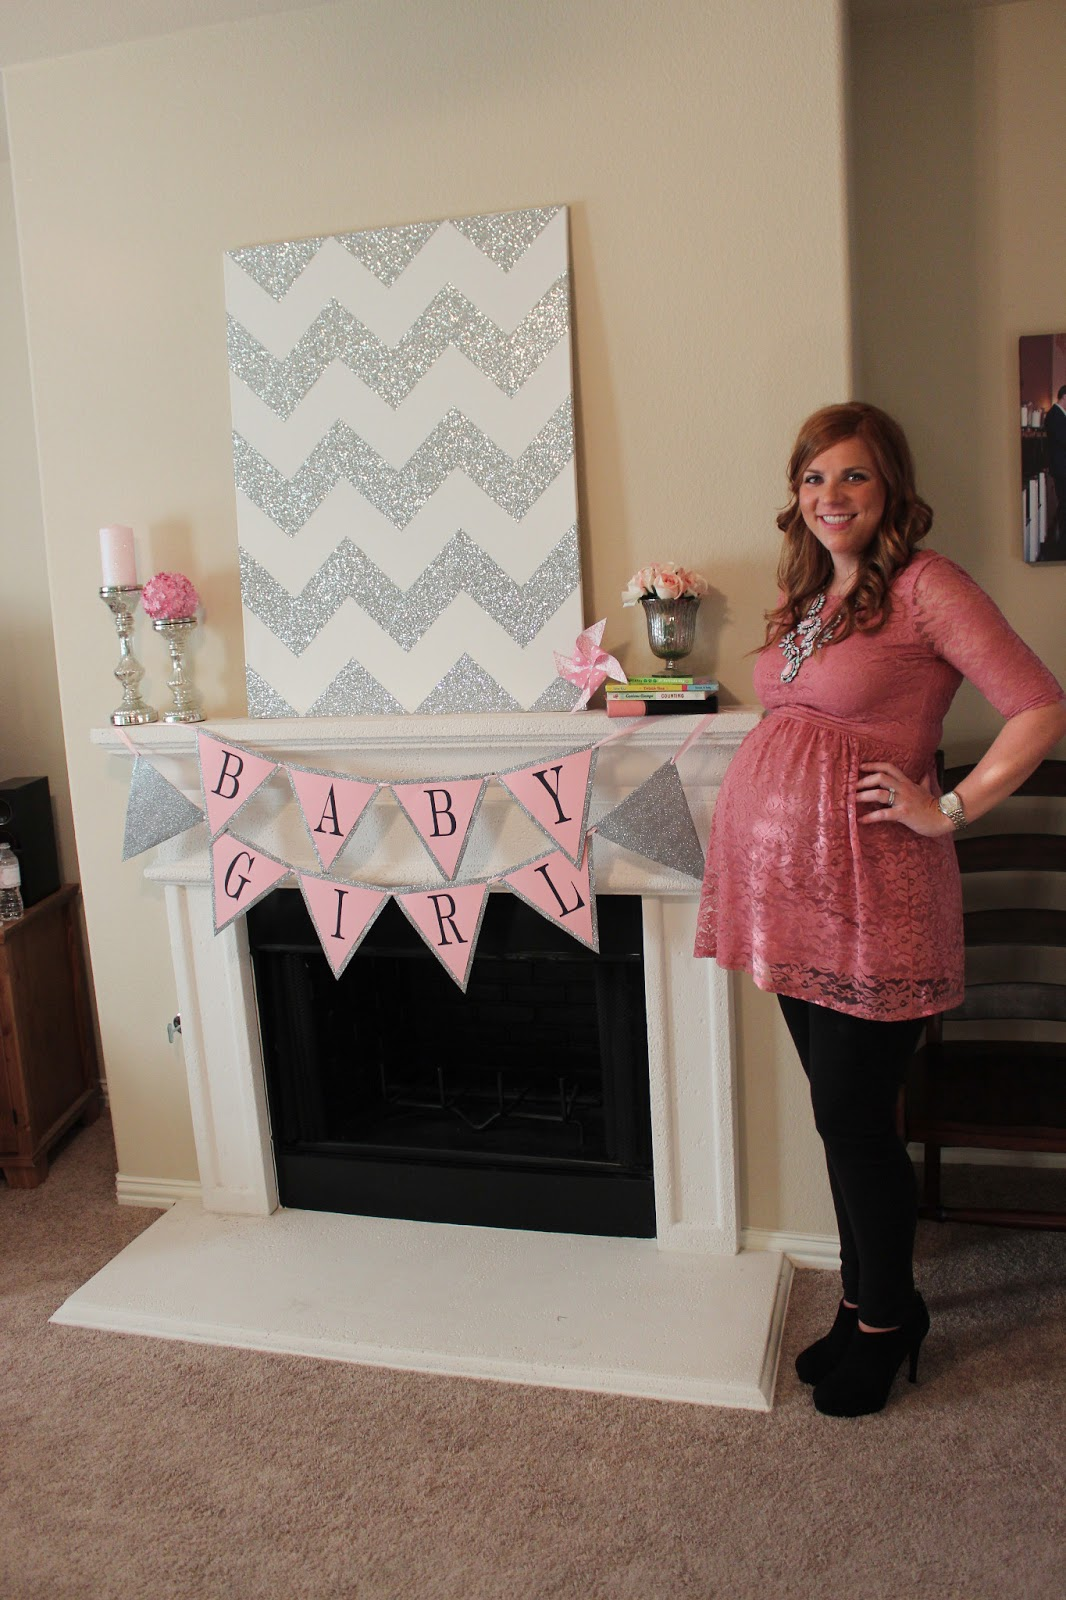 the theme of the shower was pink and grey chevron